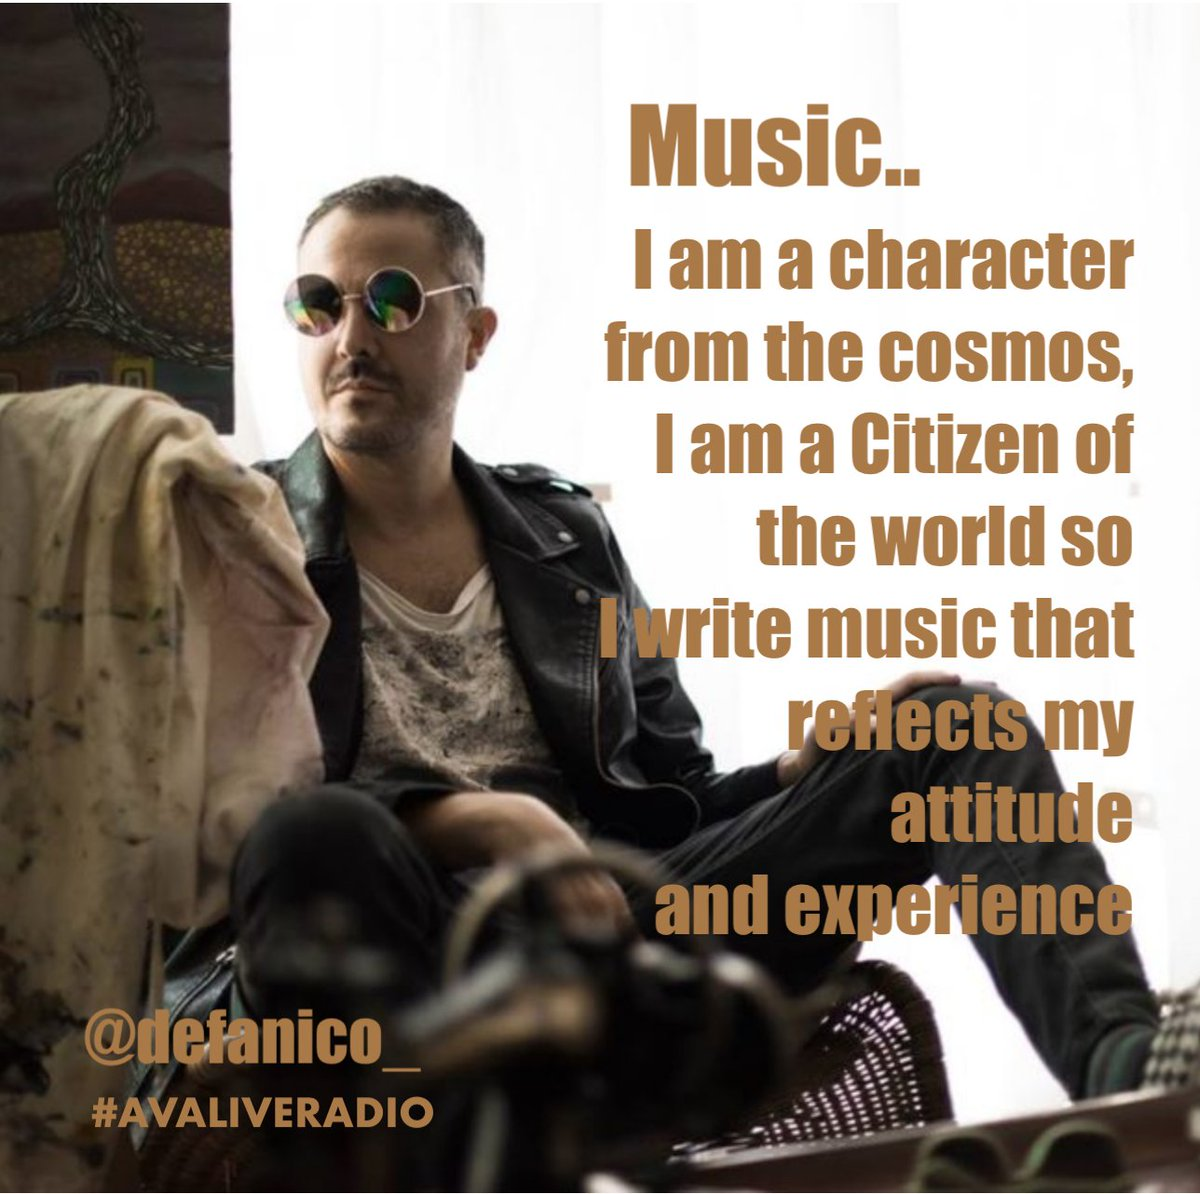 My music is universal and honest. I am a character from the cosmos, I am a Citizen of the world so i write music that reflects my attitude and experience. Music to me is wide open possibilities.   @DEFANICO  #independantmusic #musicmaker #musicproducer #musicproducerslife<br>http://pic.twitter.com/t0QB9Bvqz5